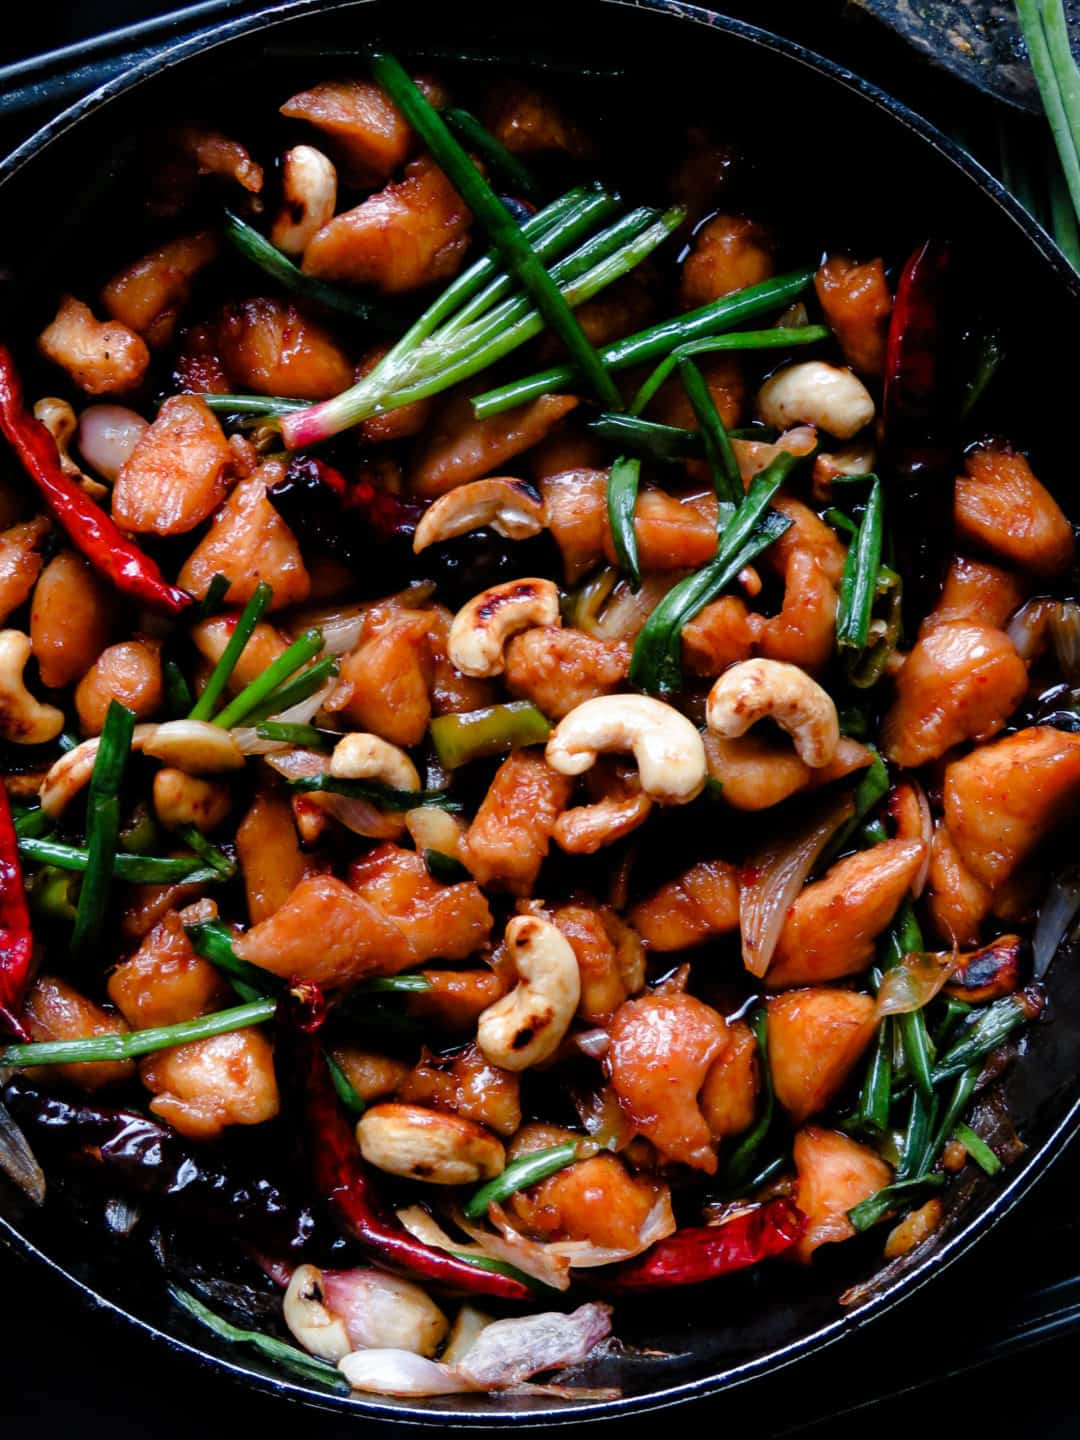 Devilled thaicashew chicken stir-fry- an easy, take-out style skillet dish. the combination of chicken and crunchy cashews in a thick sweet and spicy sauce you can season, adjust to your needs. the stir-fry is great to perk up your meals with its unique flavors-islandsmile.org